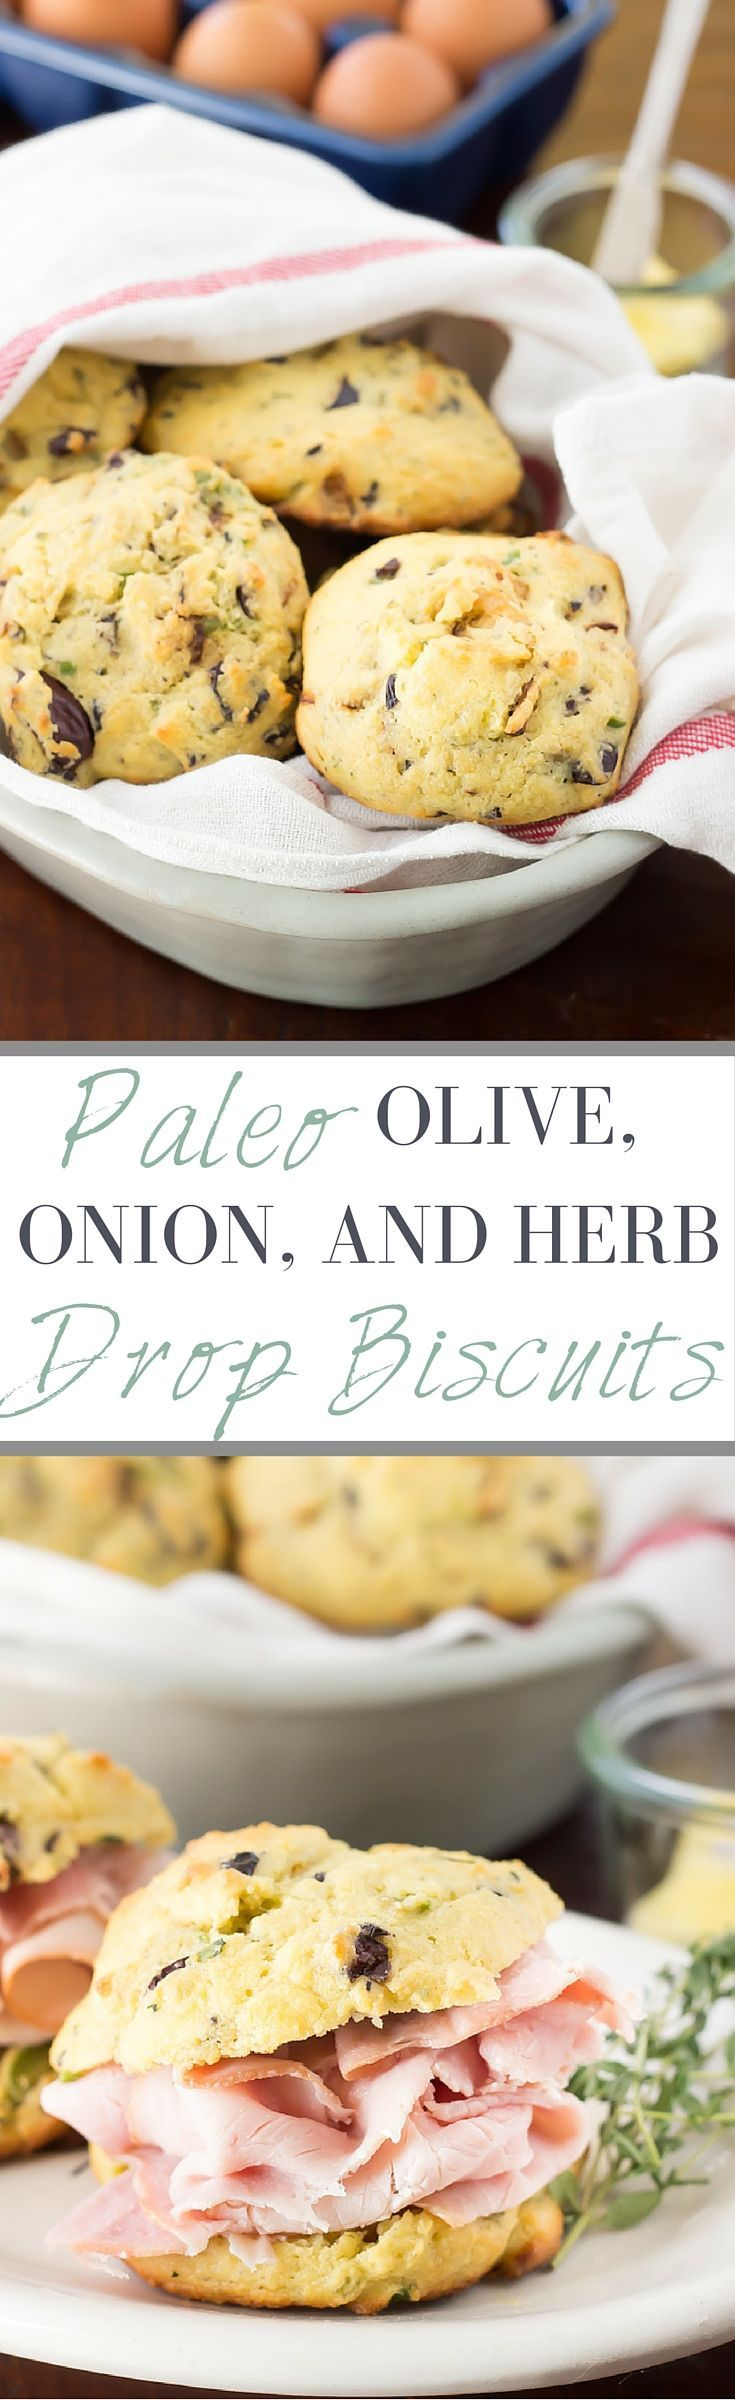 These Easy Paleo Drop Biscuits get jazzed up with olives, caramelized onions, and fresh herbs. Perfect for little sandwiches or a great roll alternative!